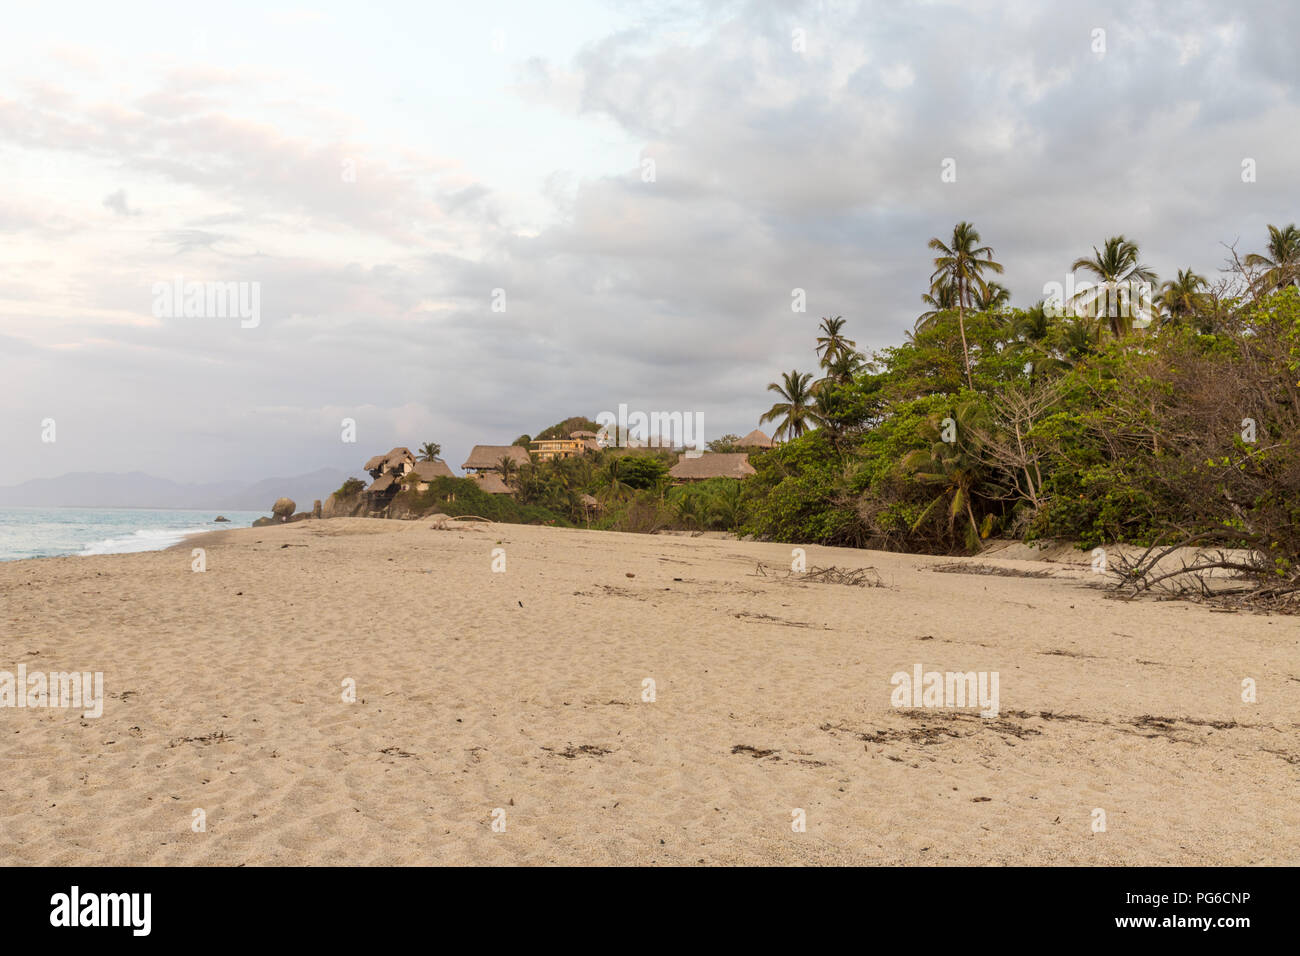 A typical view in santa Marta in Colombia. - Stock Image